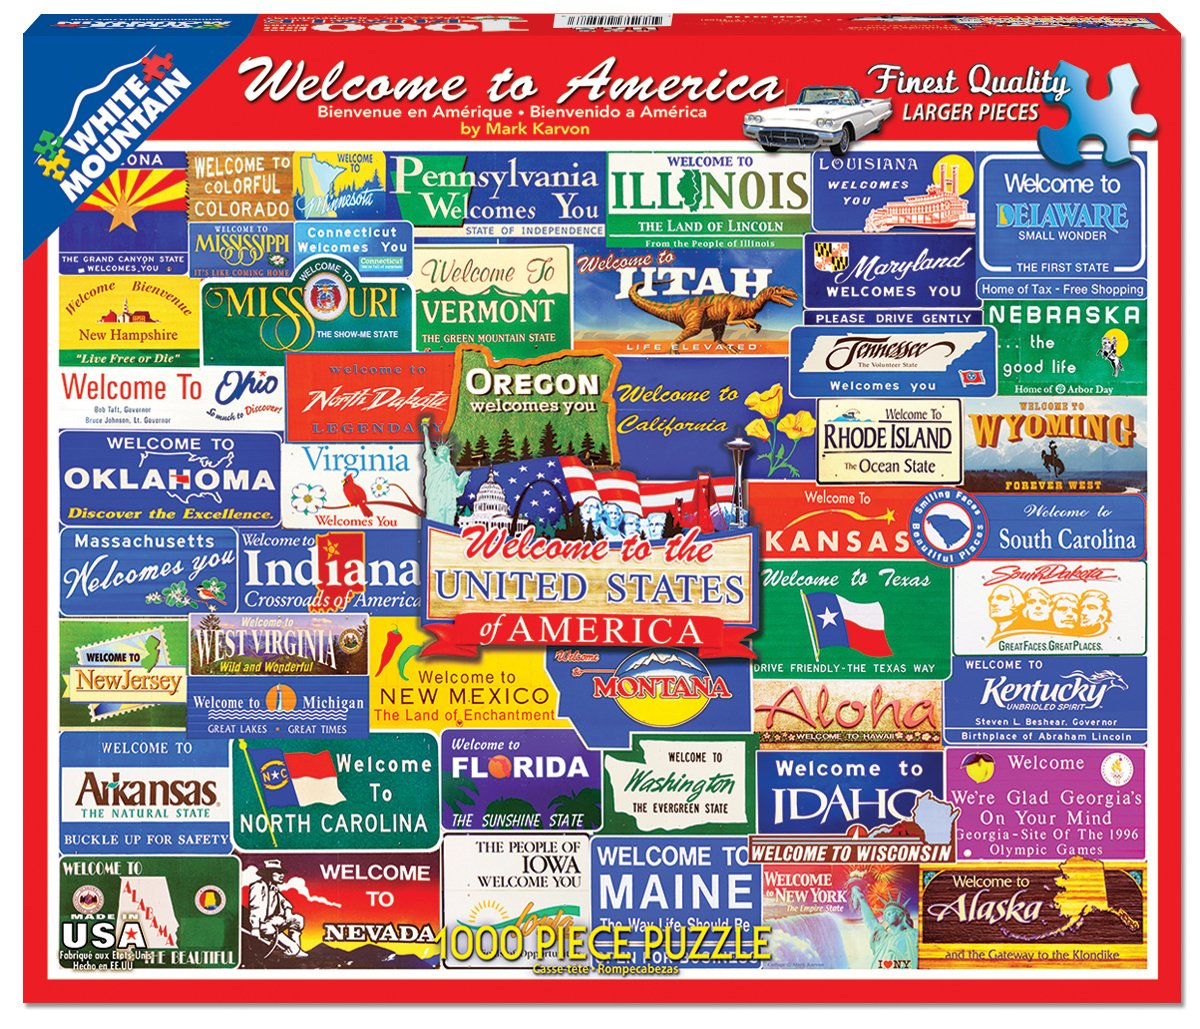 Amazon.com: White Mountain Puzzles Welcome to America - 1000 Piece ...